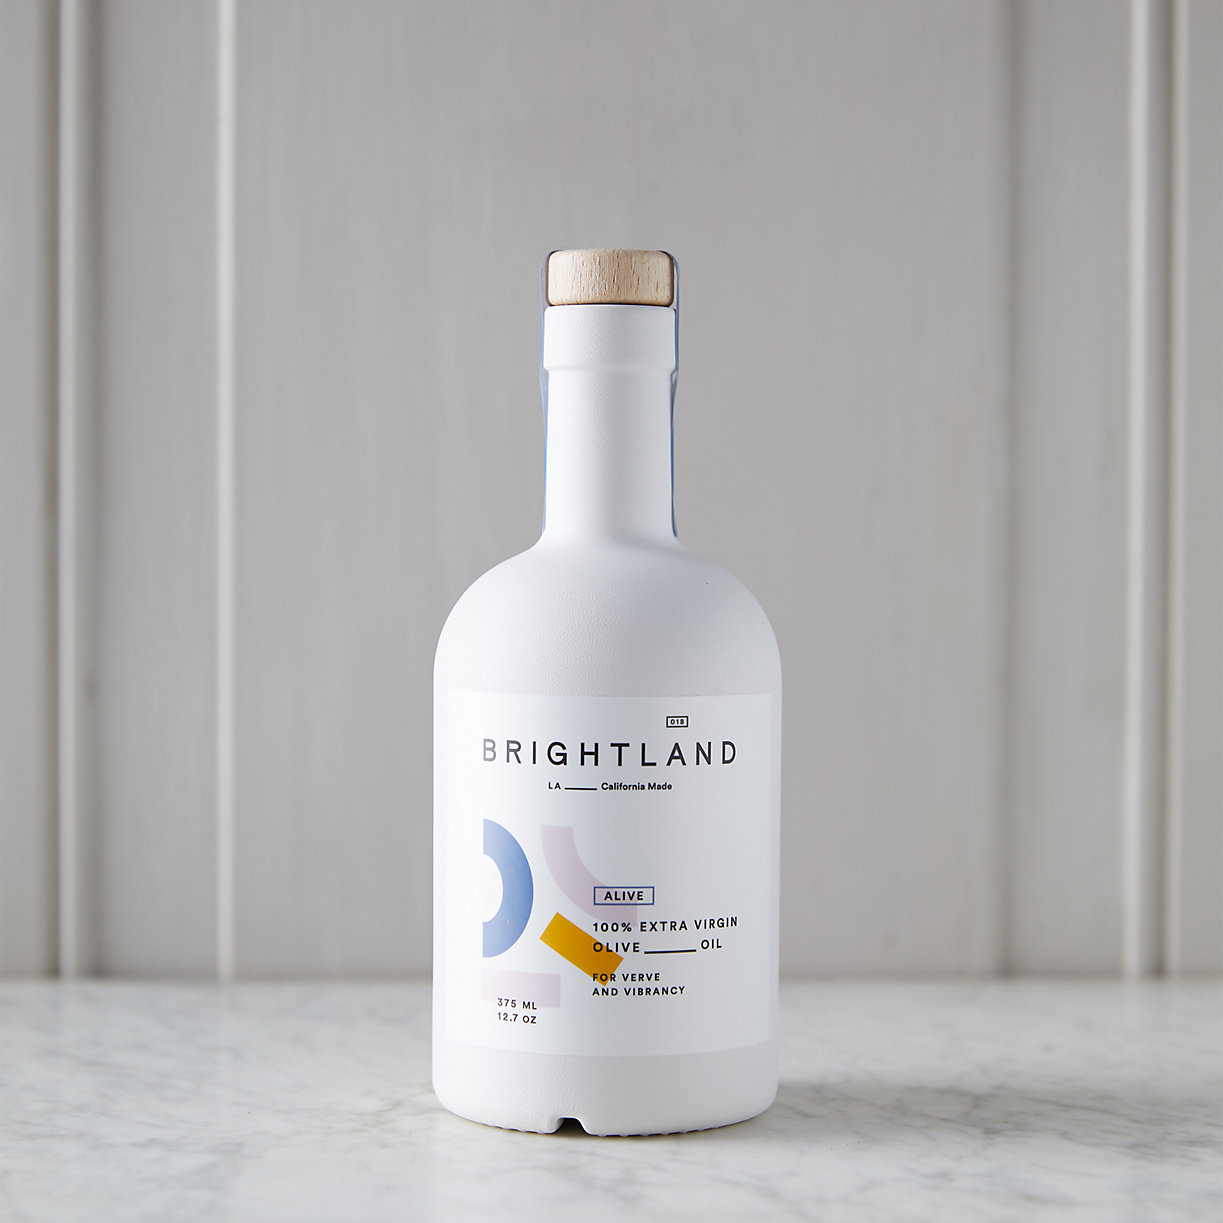 Summer Party Hostess Gifts: Brightland Alive Olive Oil